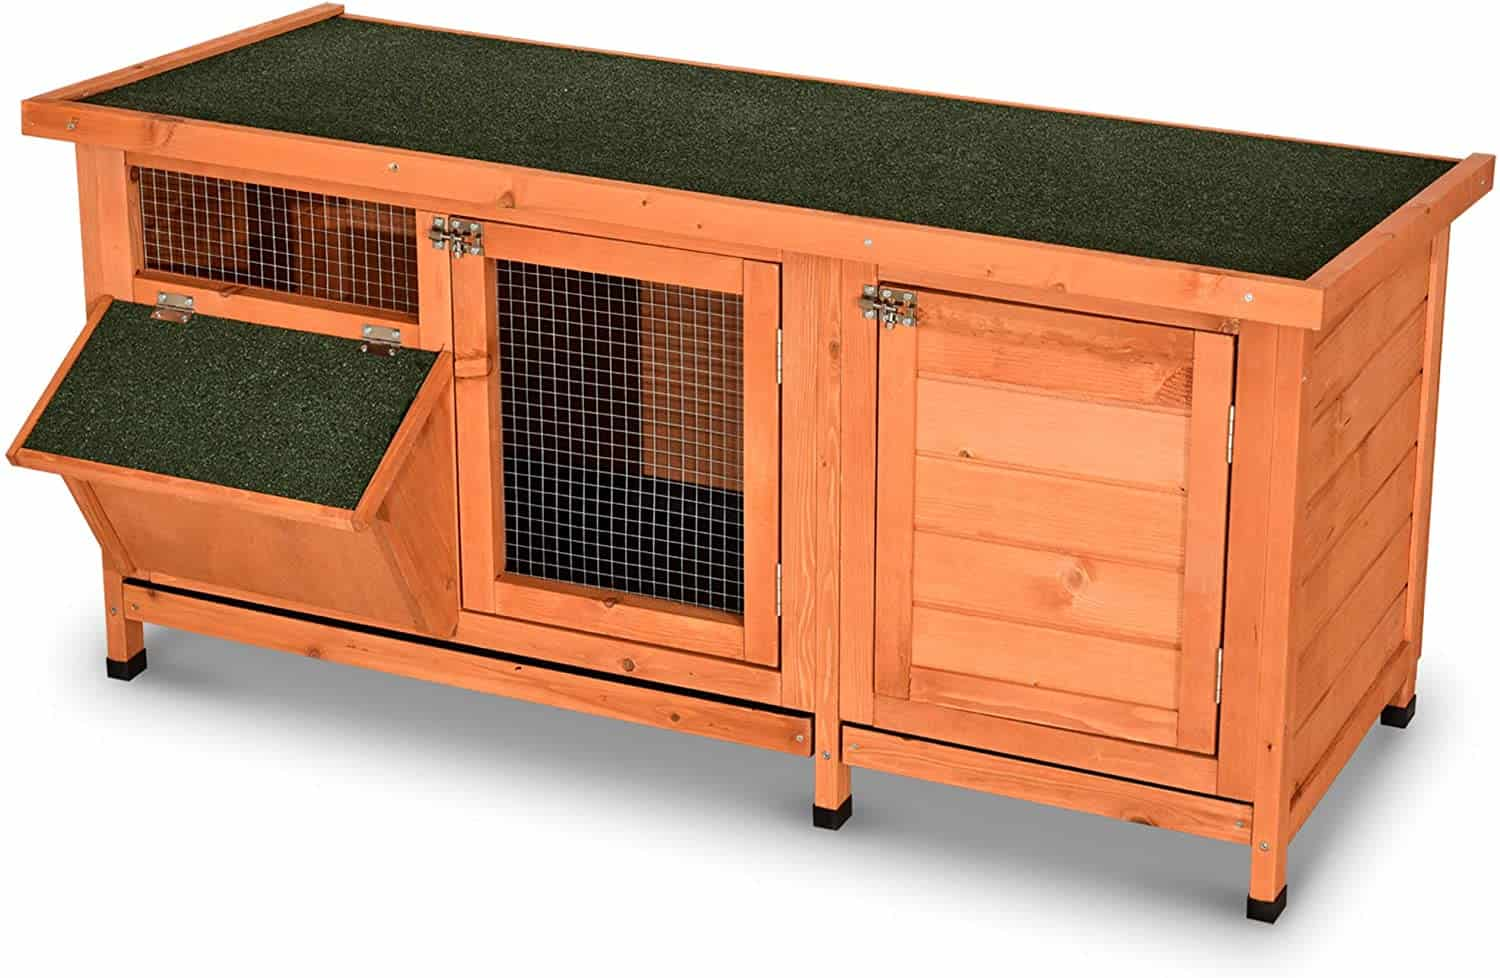 Lovupet Wooden Outdoor and Indoor Rabbit Hutch with Feeding Through